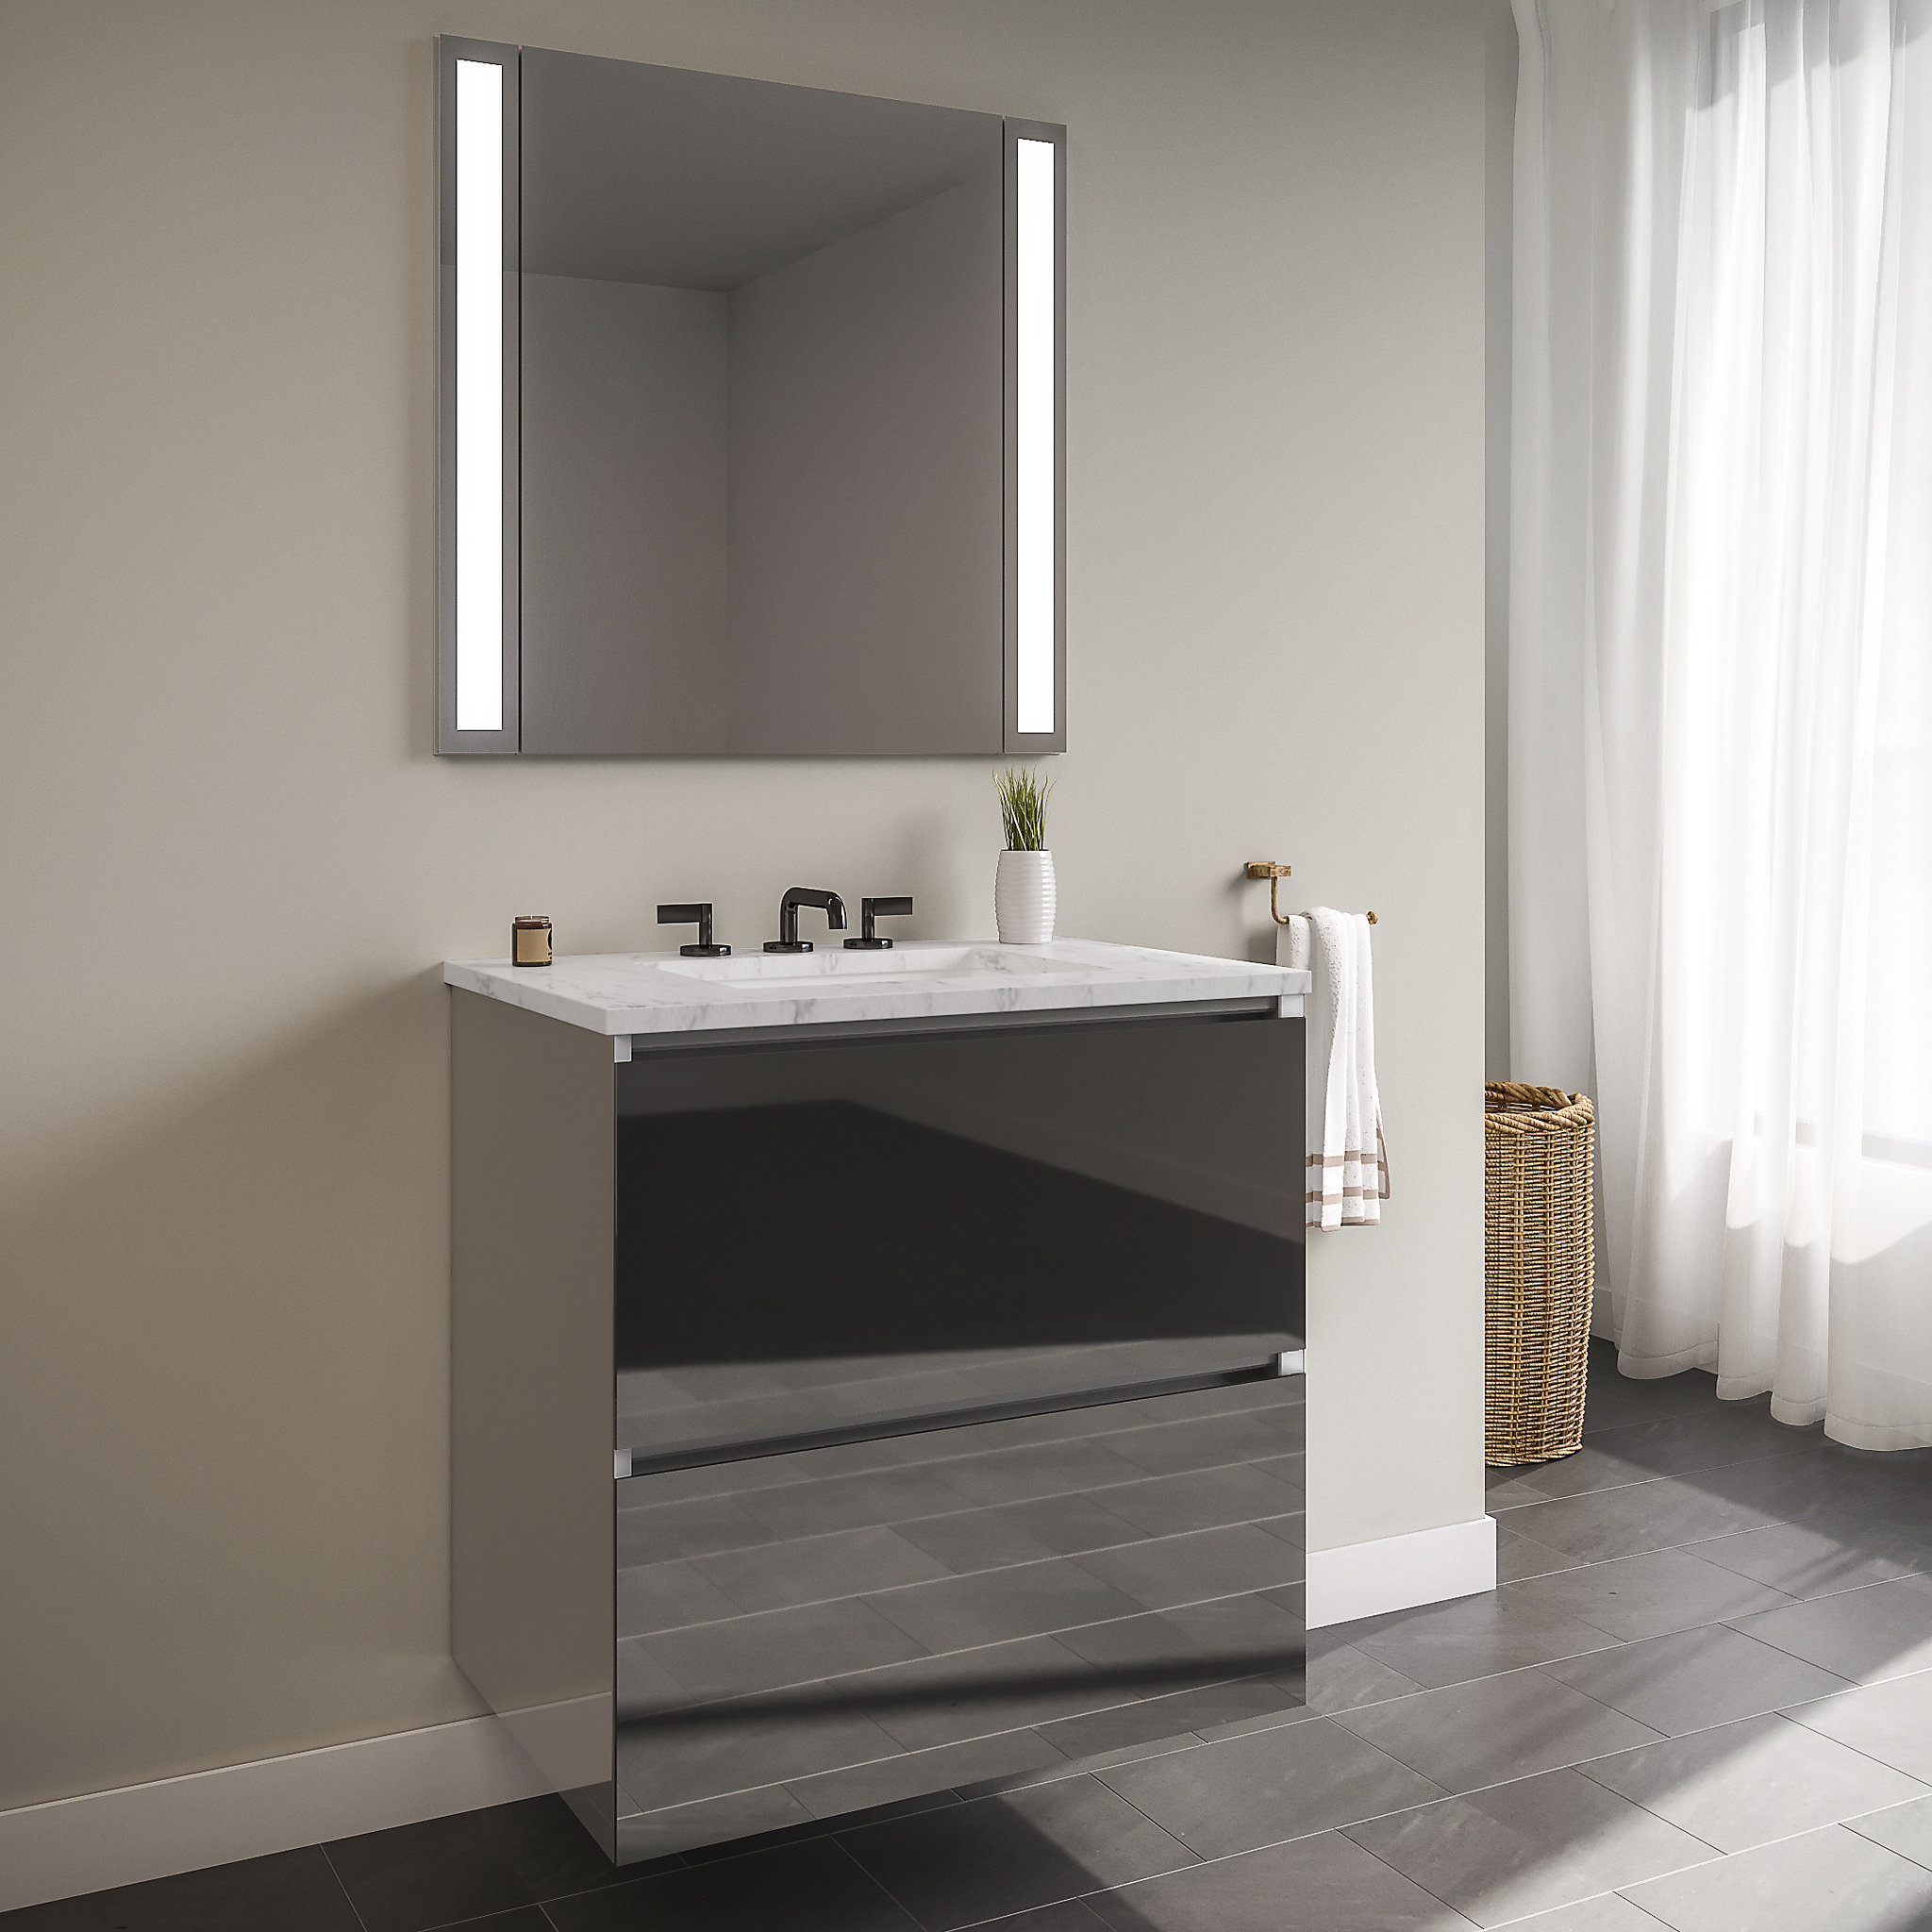 "Robern 24119400NB00002 Curated Cartesian Vanity, 24"" x 15"" x 21"", Two Drawer, Tinted Gray Mirror Glass, Plumbing Drawer, Full Dr"